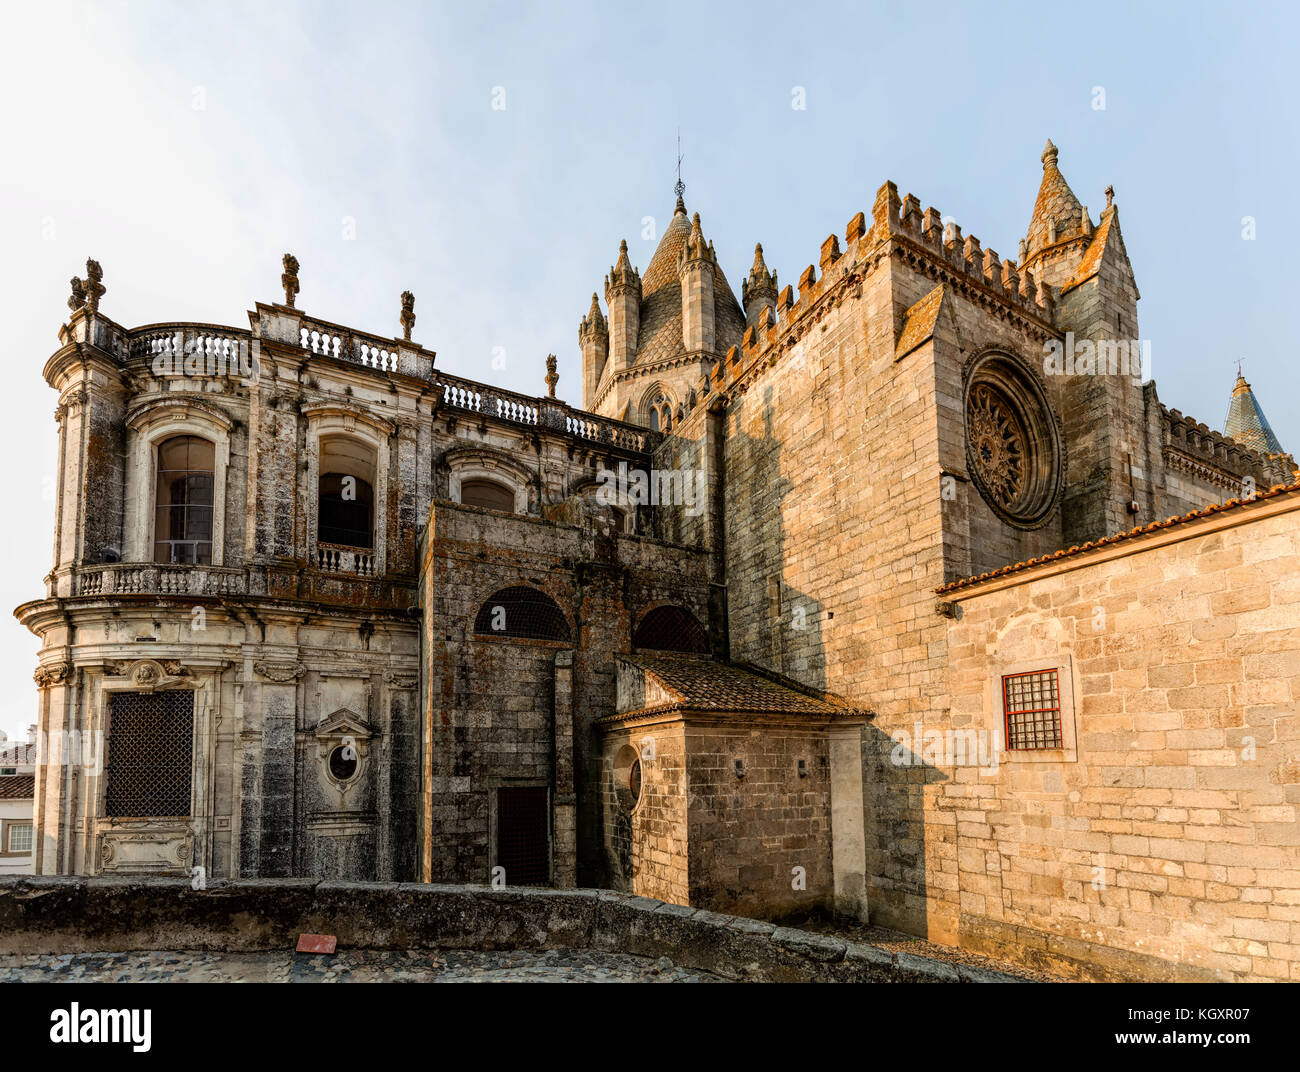 The Se Cathedral of Evora, Portugal, originated in the 13th century, declared a World Heritage Site by UNESCO in - Stock Image